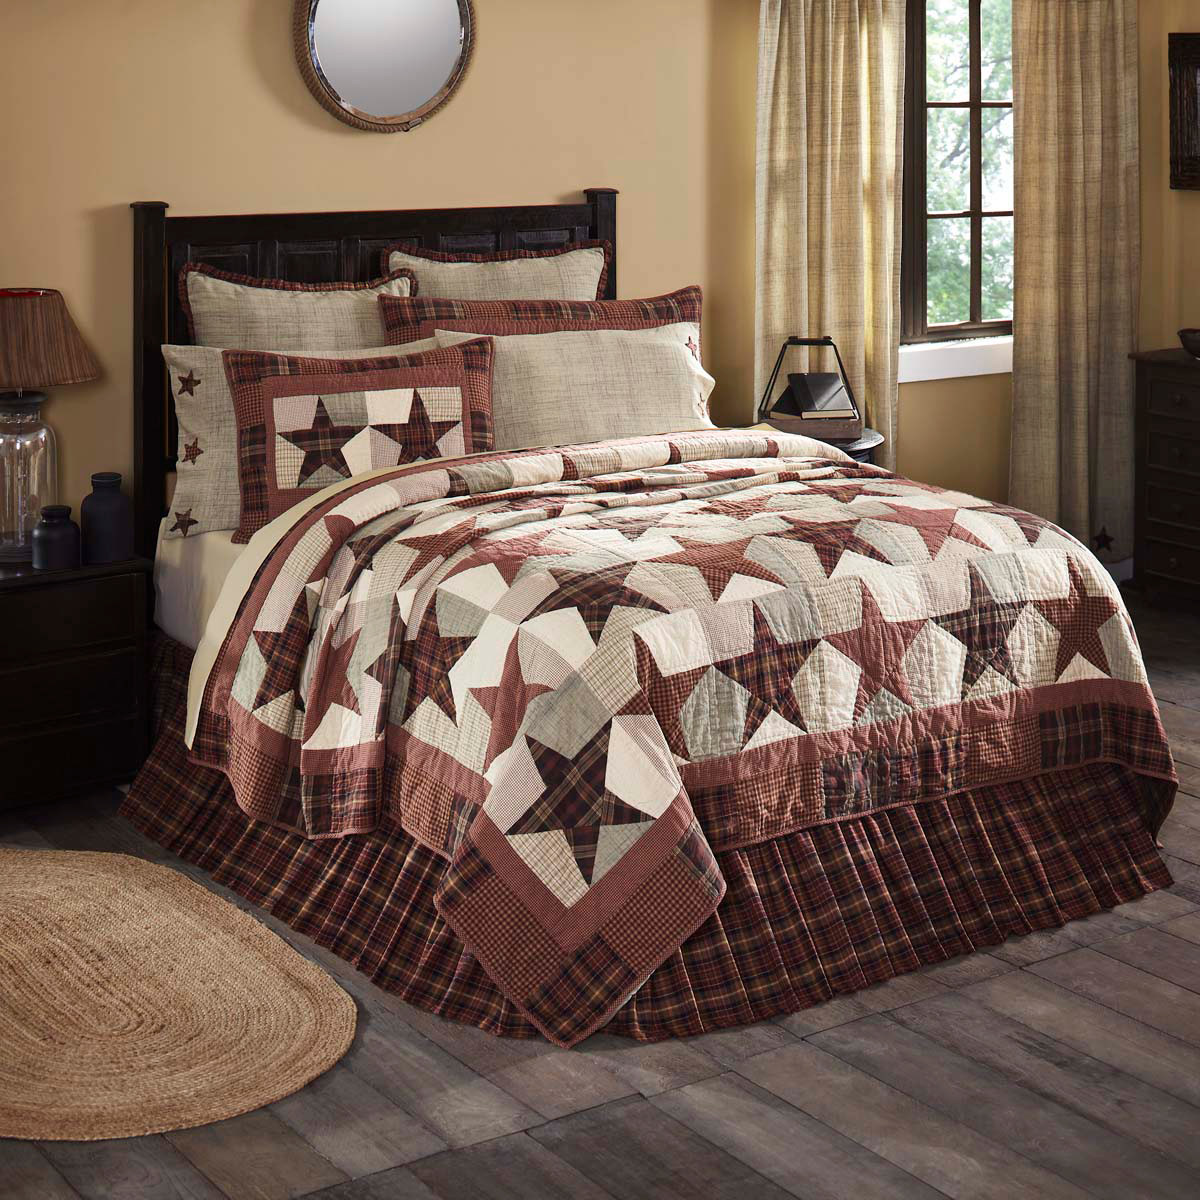 8-pc Luxury California King Abilene Star Quilt Set - Stars & Plaids Five Patch